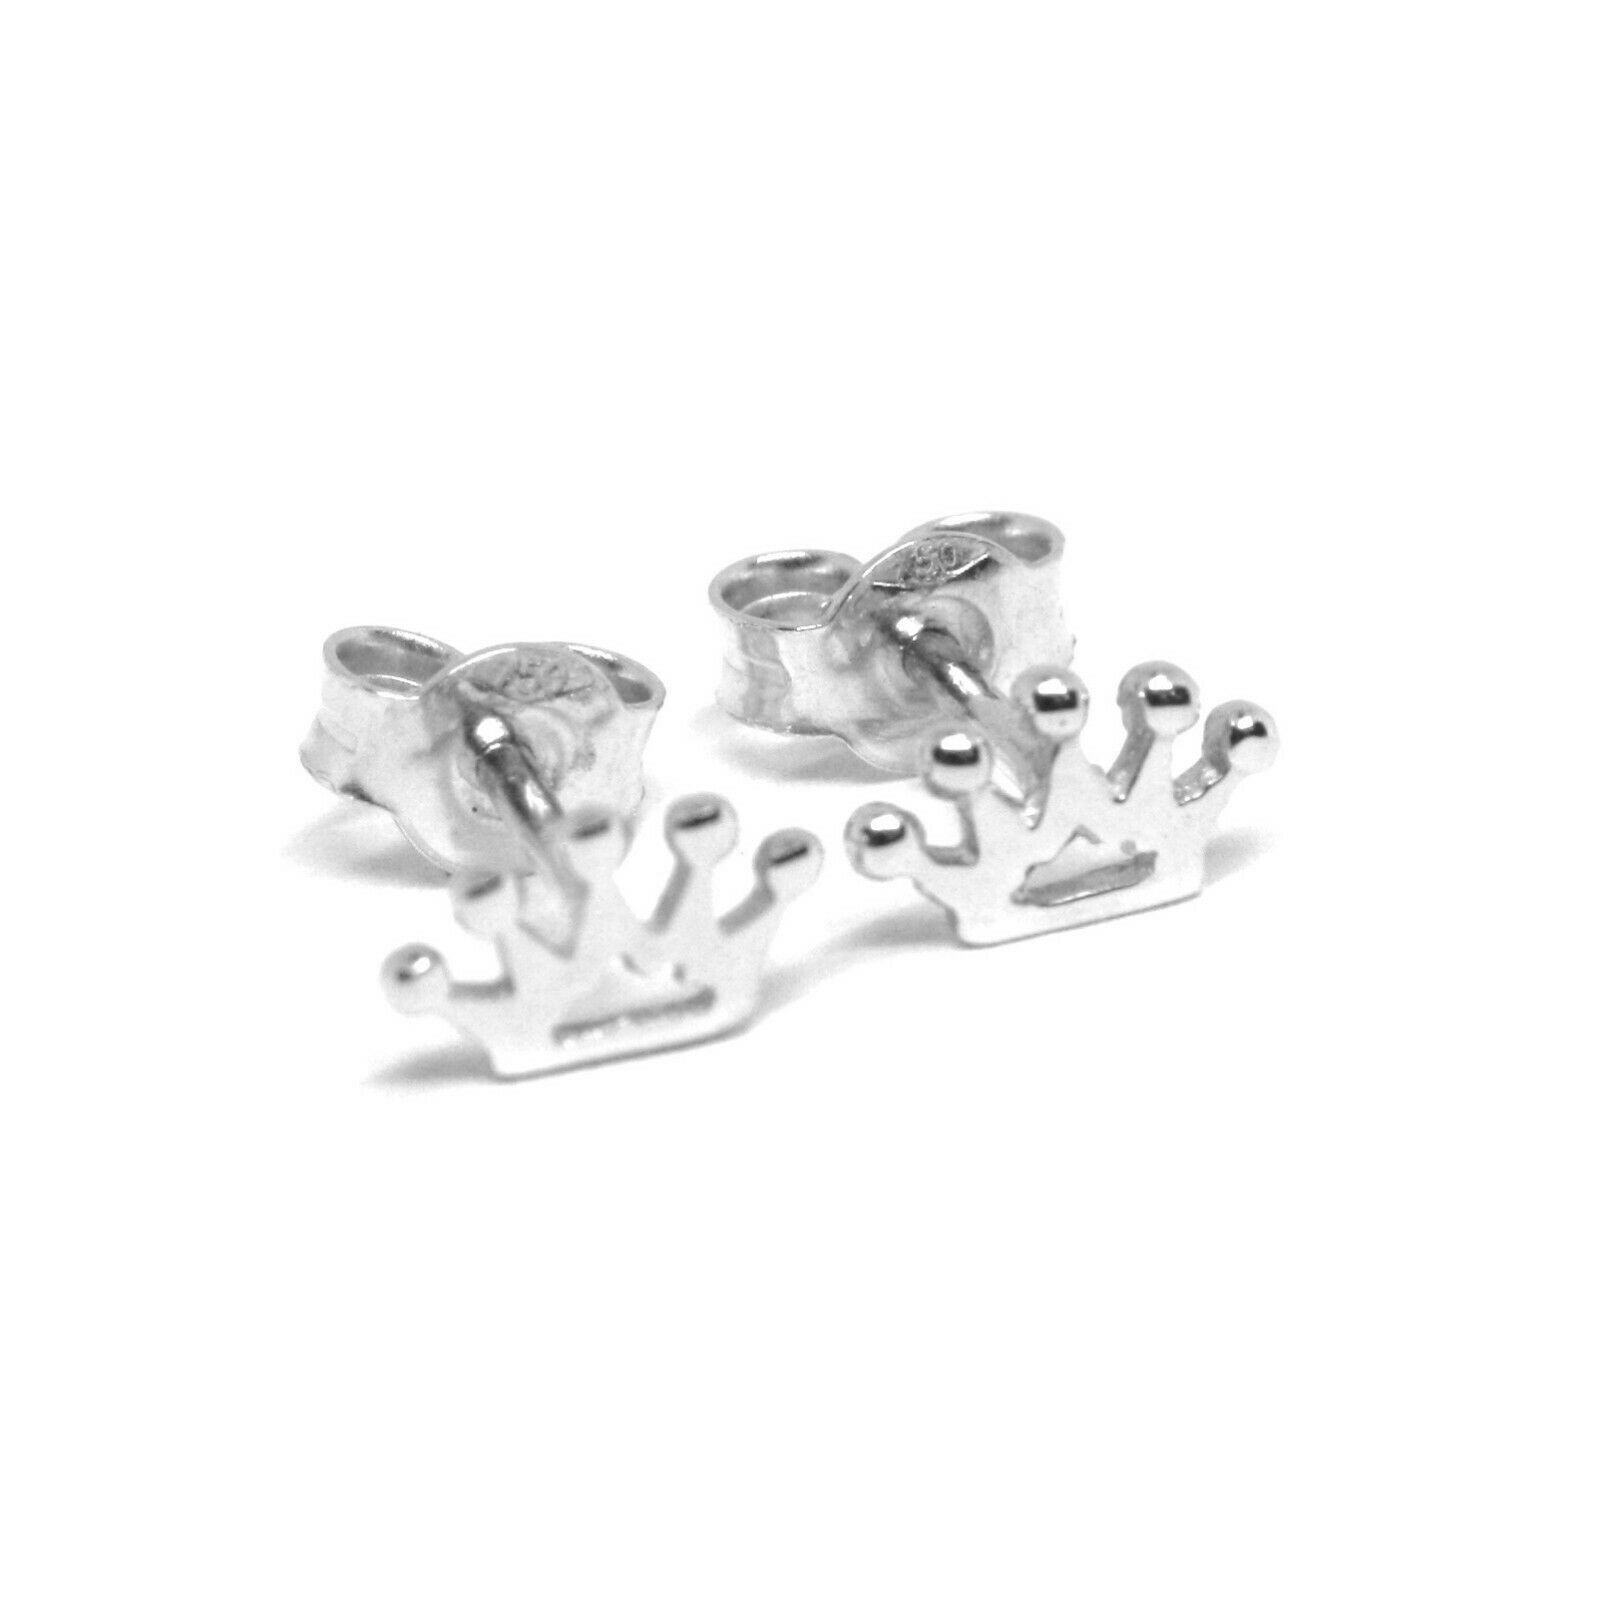 18K WHITE GOLD EARRINGS, FLAT MINI CROWN, 0.2 INCHES, BUTTERFLY CLOSURE